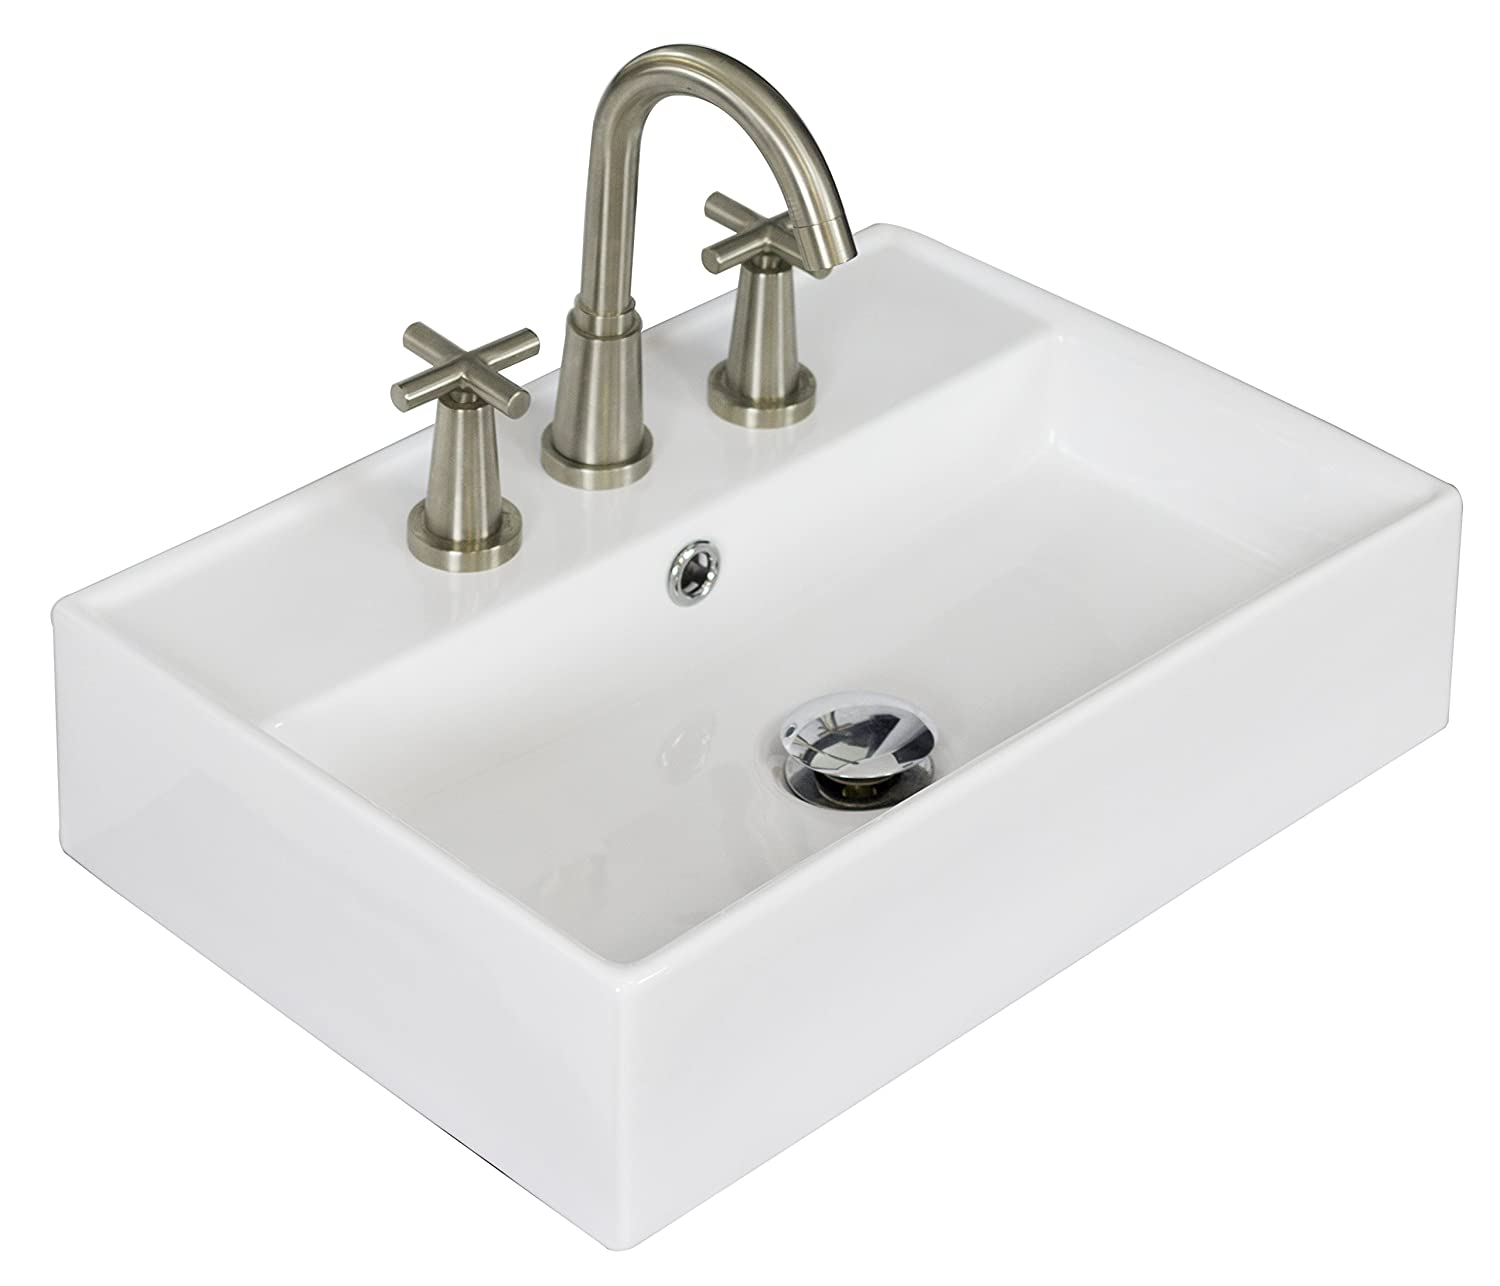 American Imaginations AI-8-1330 Above Counter Rectangle Vessel for 8-Inch OC Faucet, 20-Inch x 14-Inch, White